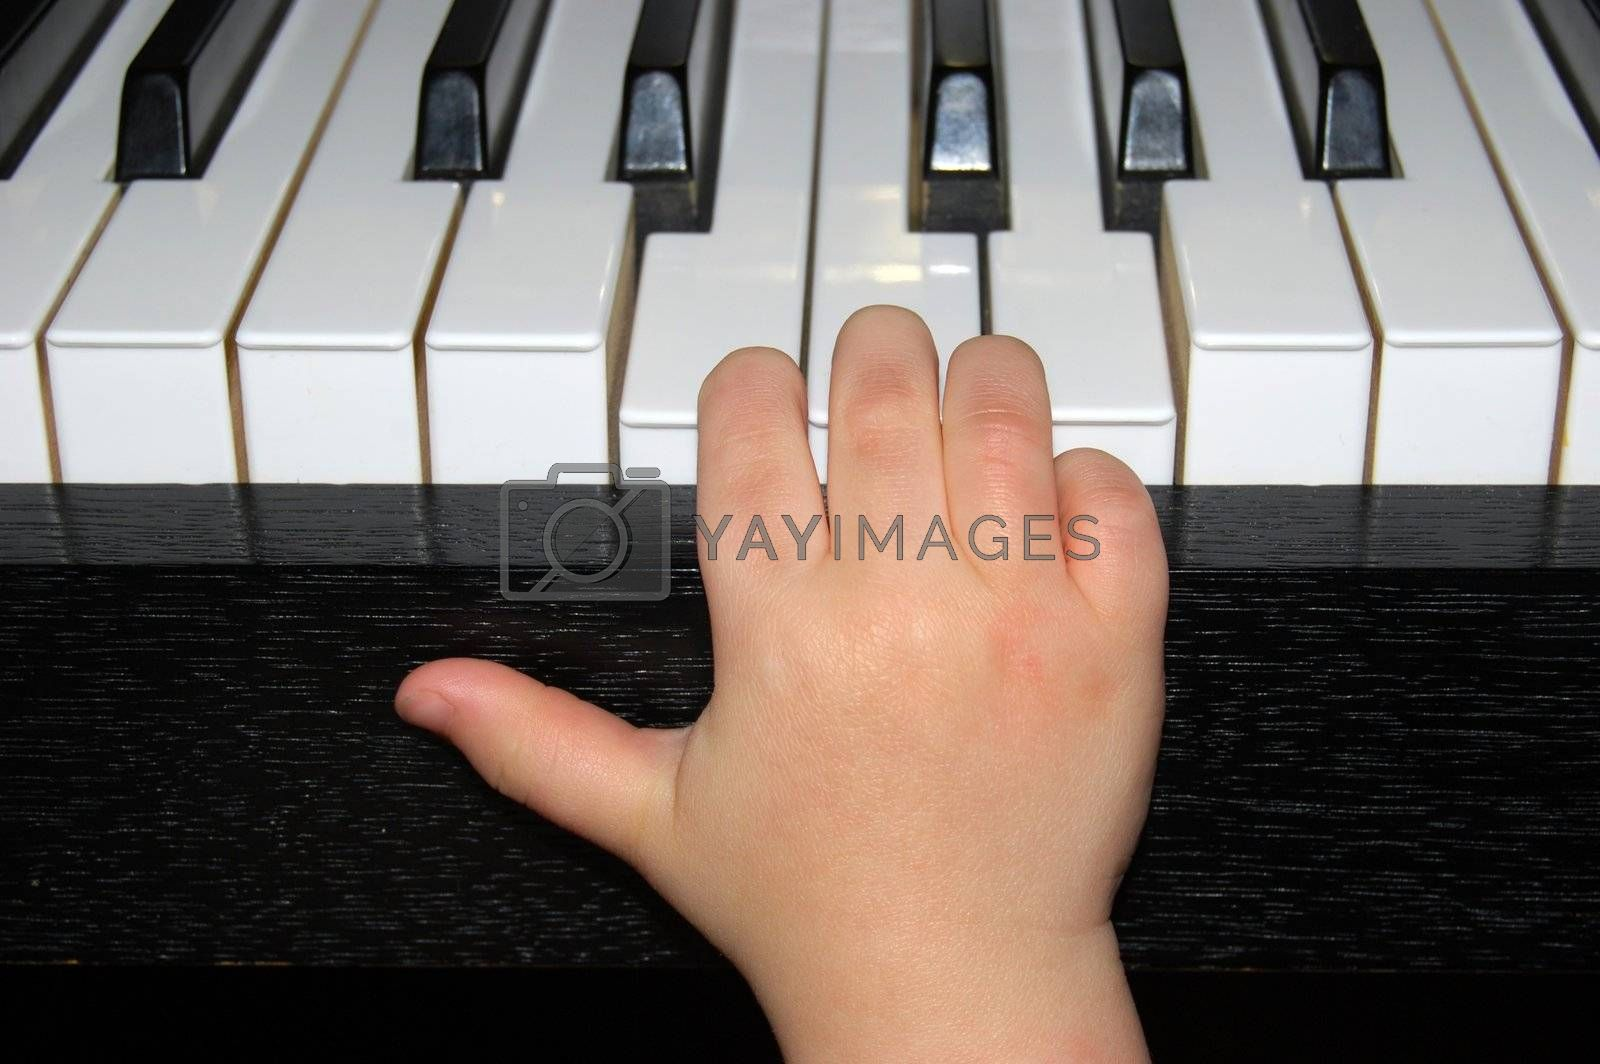 Child training at the piano